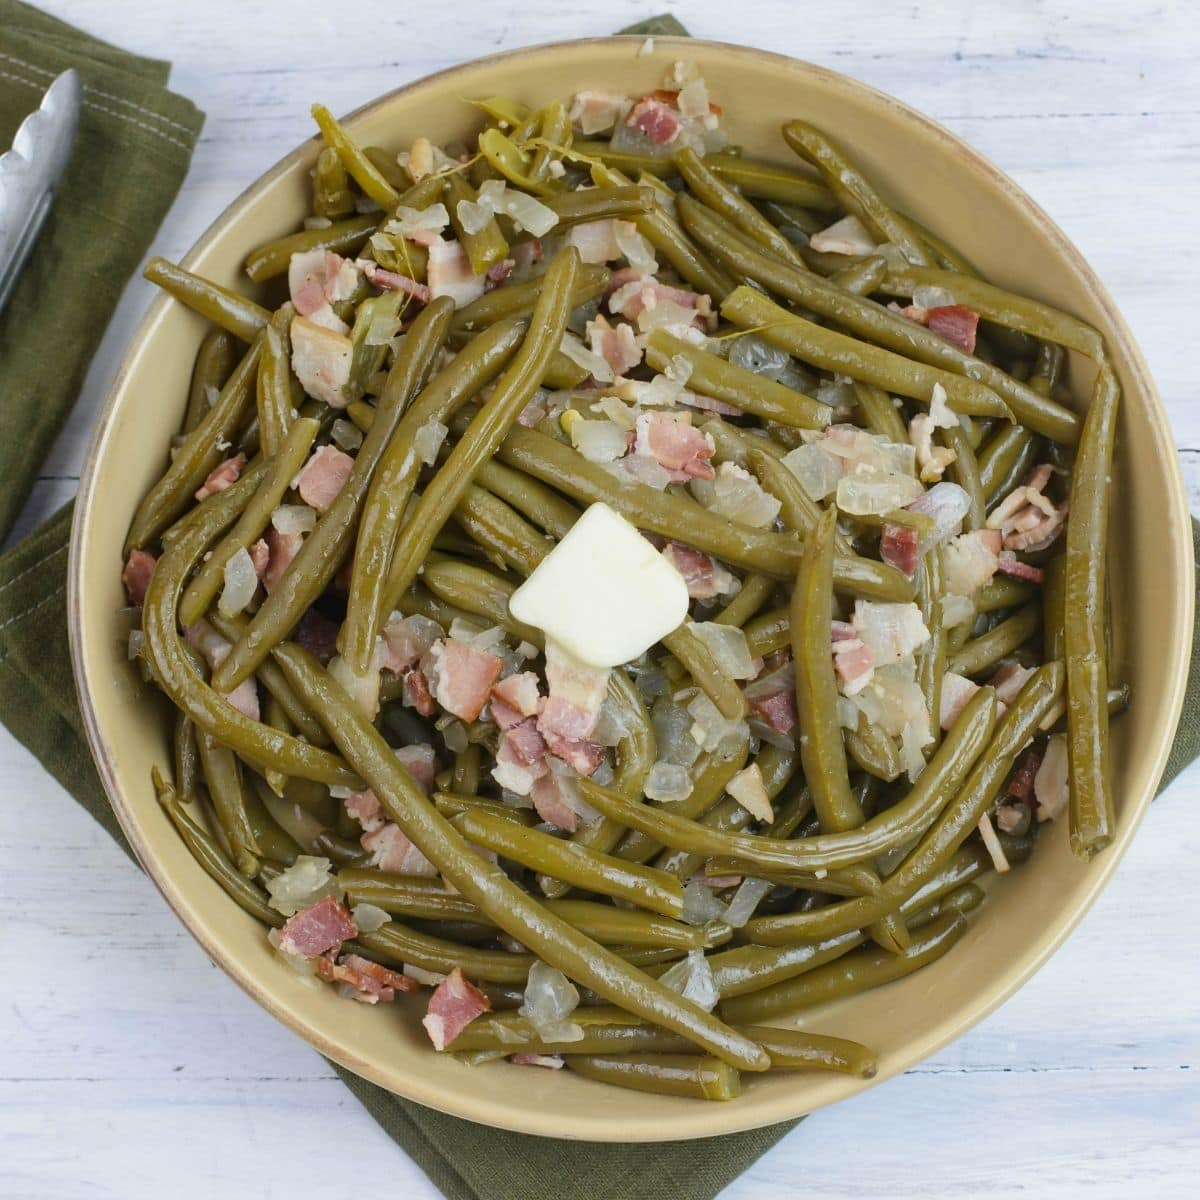 A large serving bowl filled with crock pot green beans with bacon.